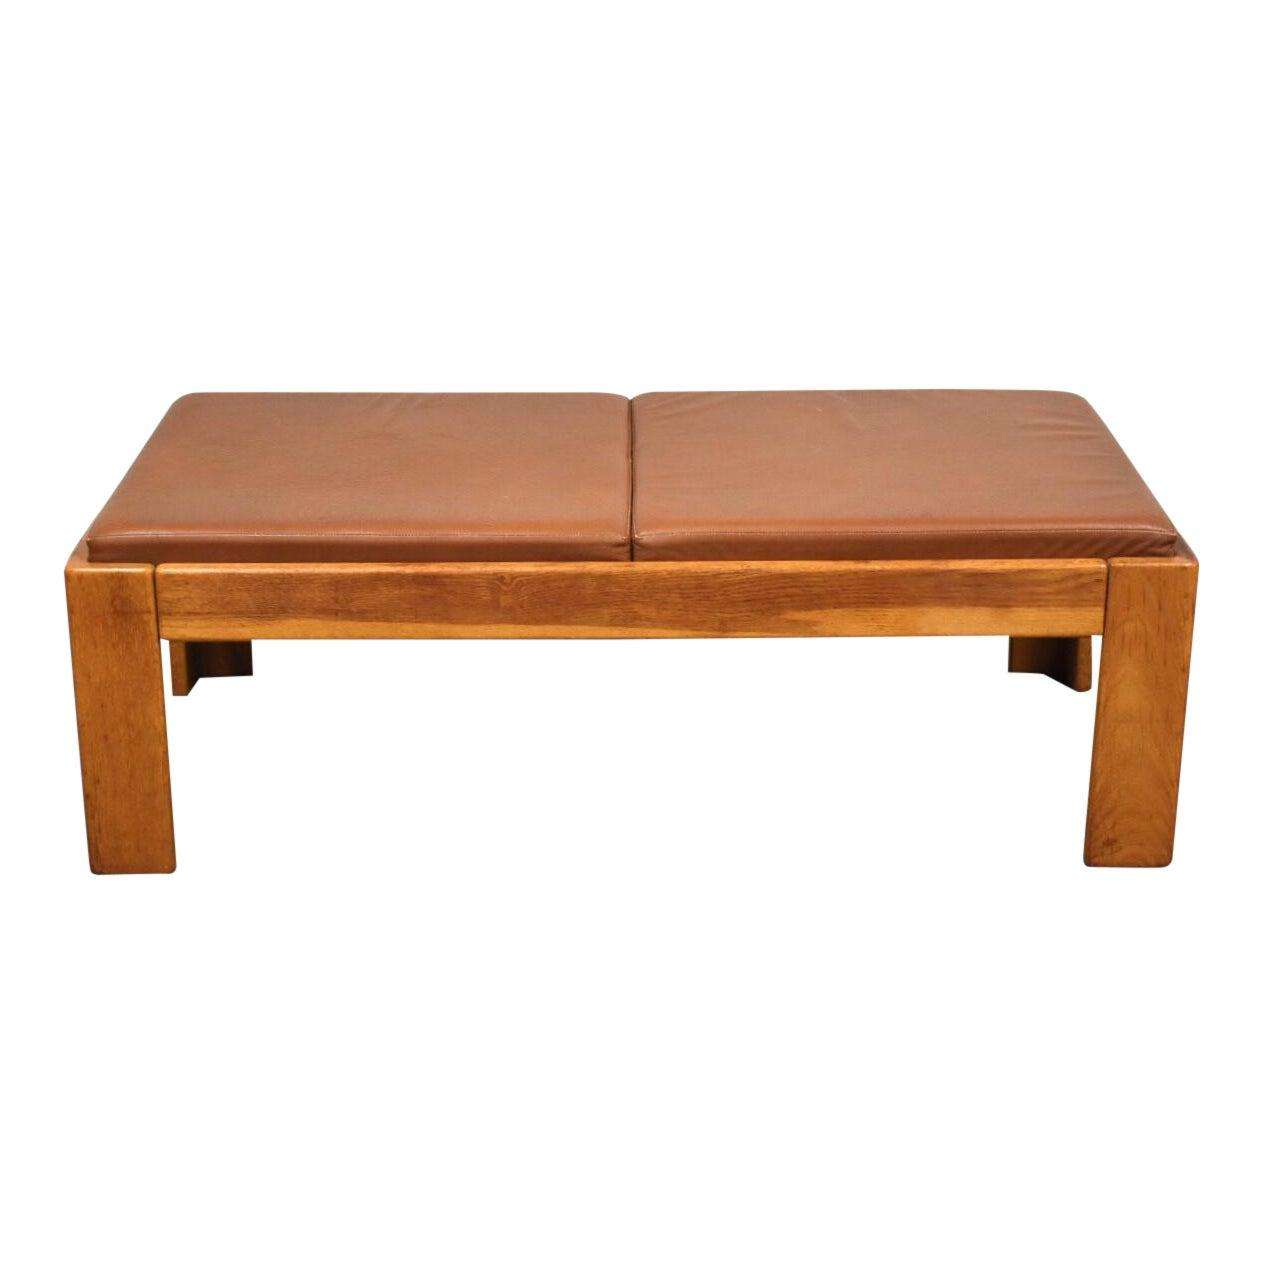 Wondrous Modern Oak And Brown Leather Bench By Knoll Machost Co Dining Chair Design Ideas Machostcouk